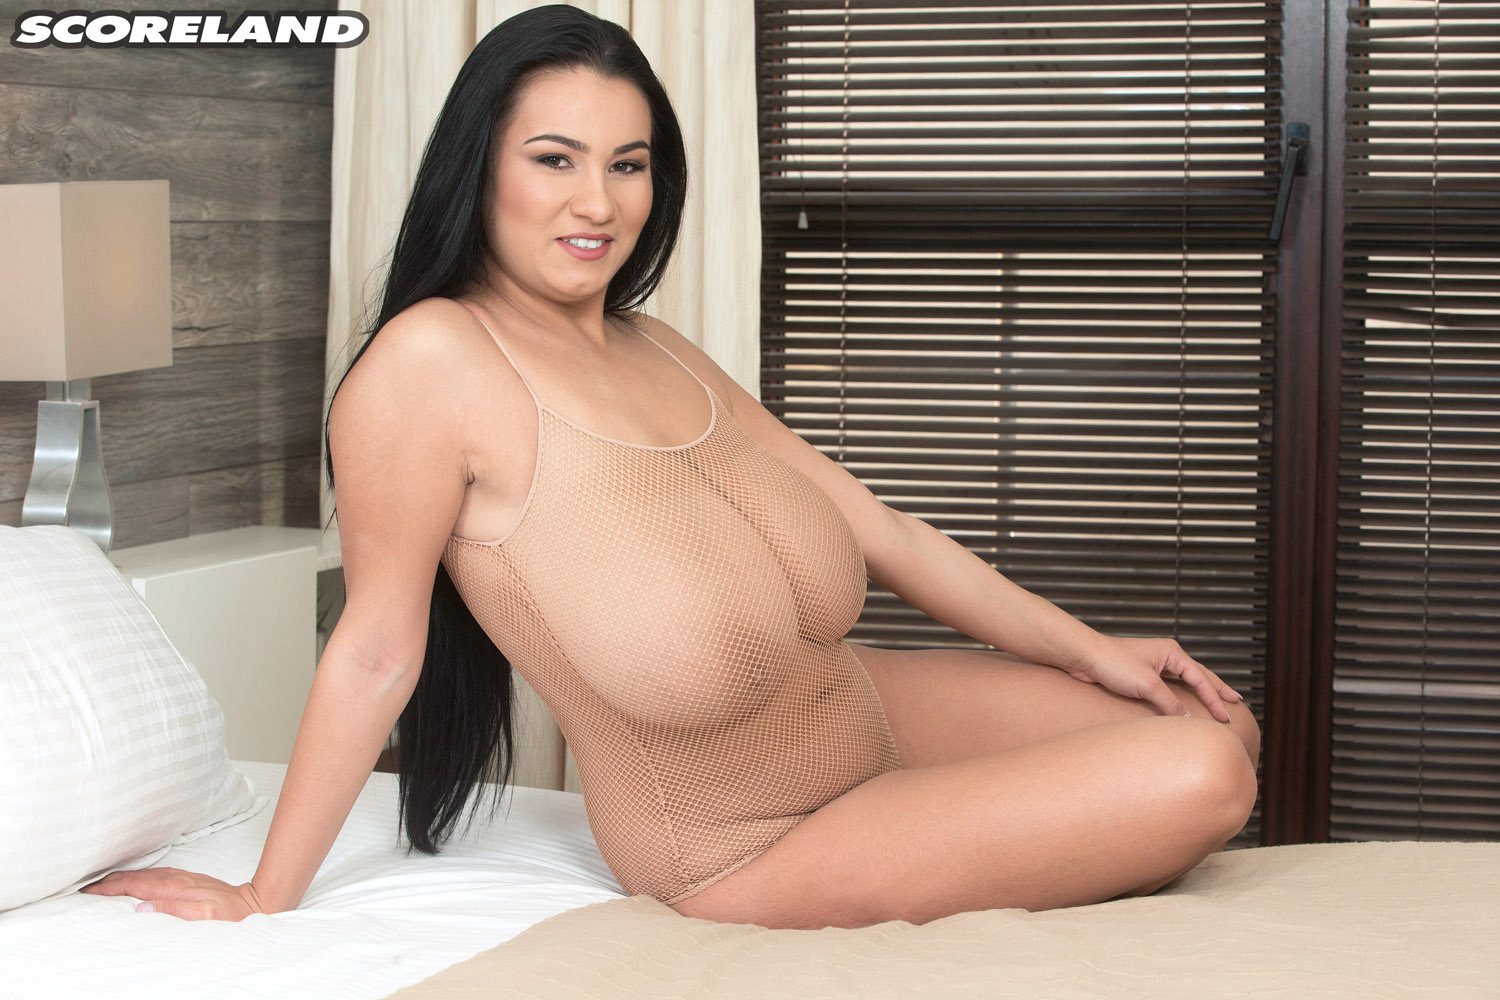 Mega Busty Helen Star Spreading And Shaking Her Boobs The Boobs Blog